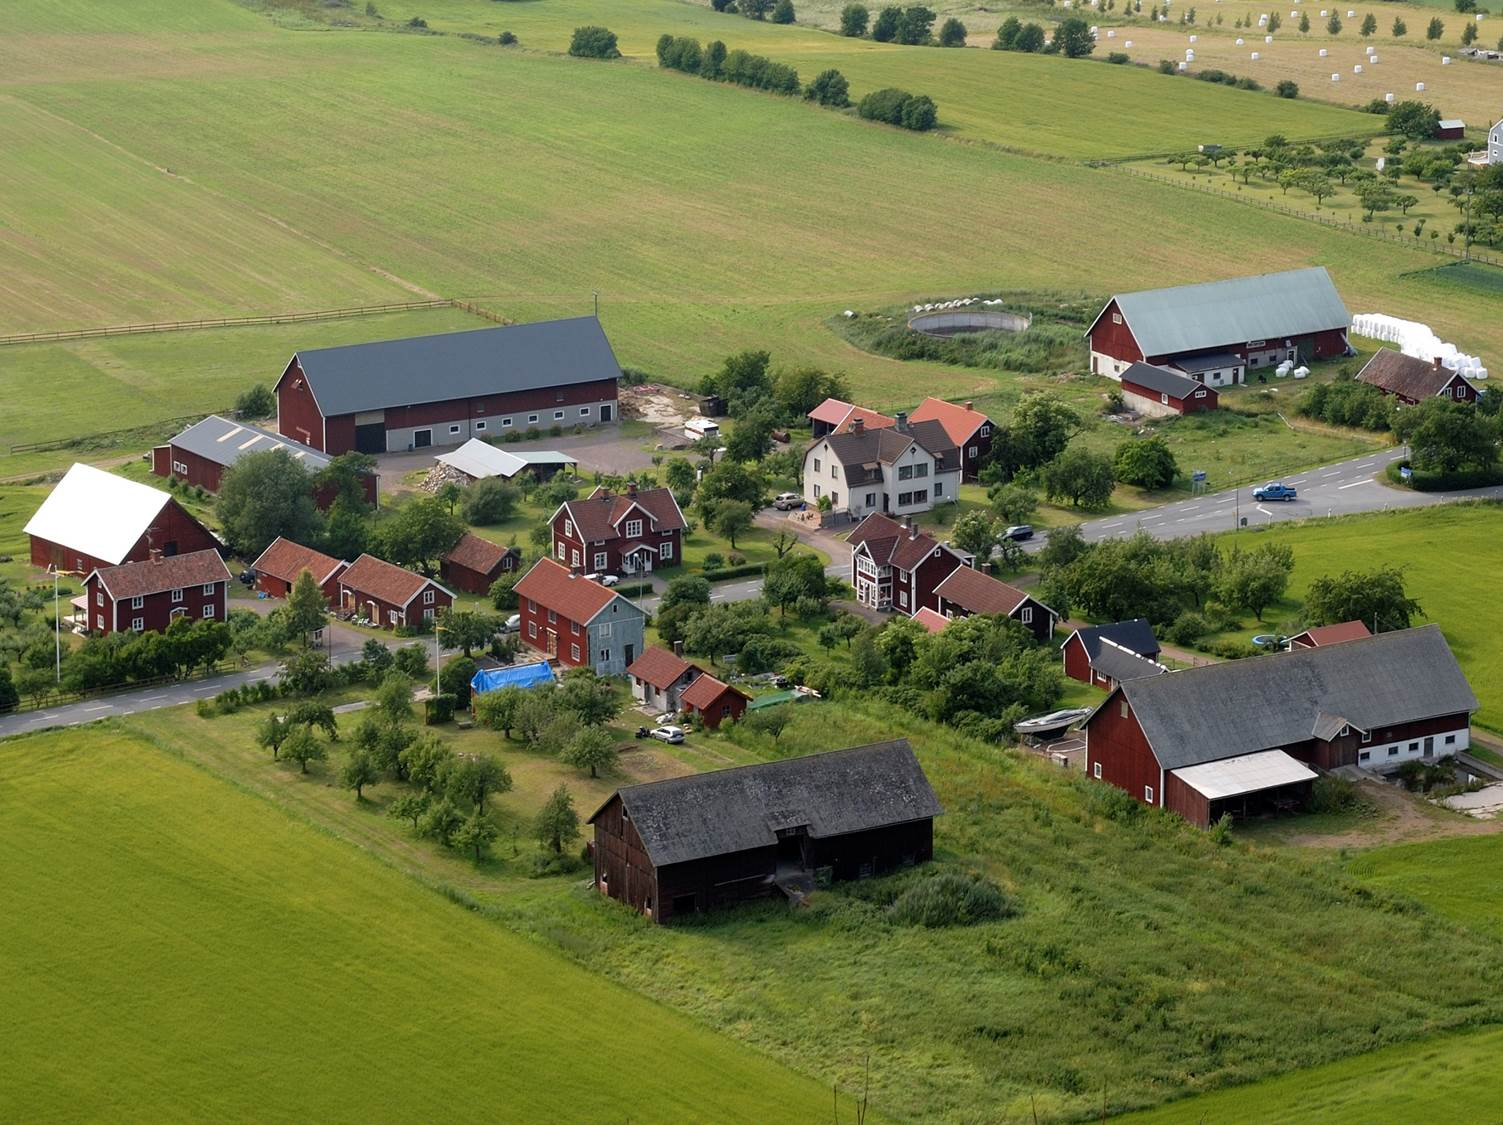 Swedish countryside village